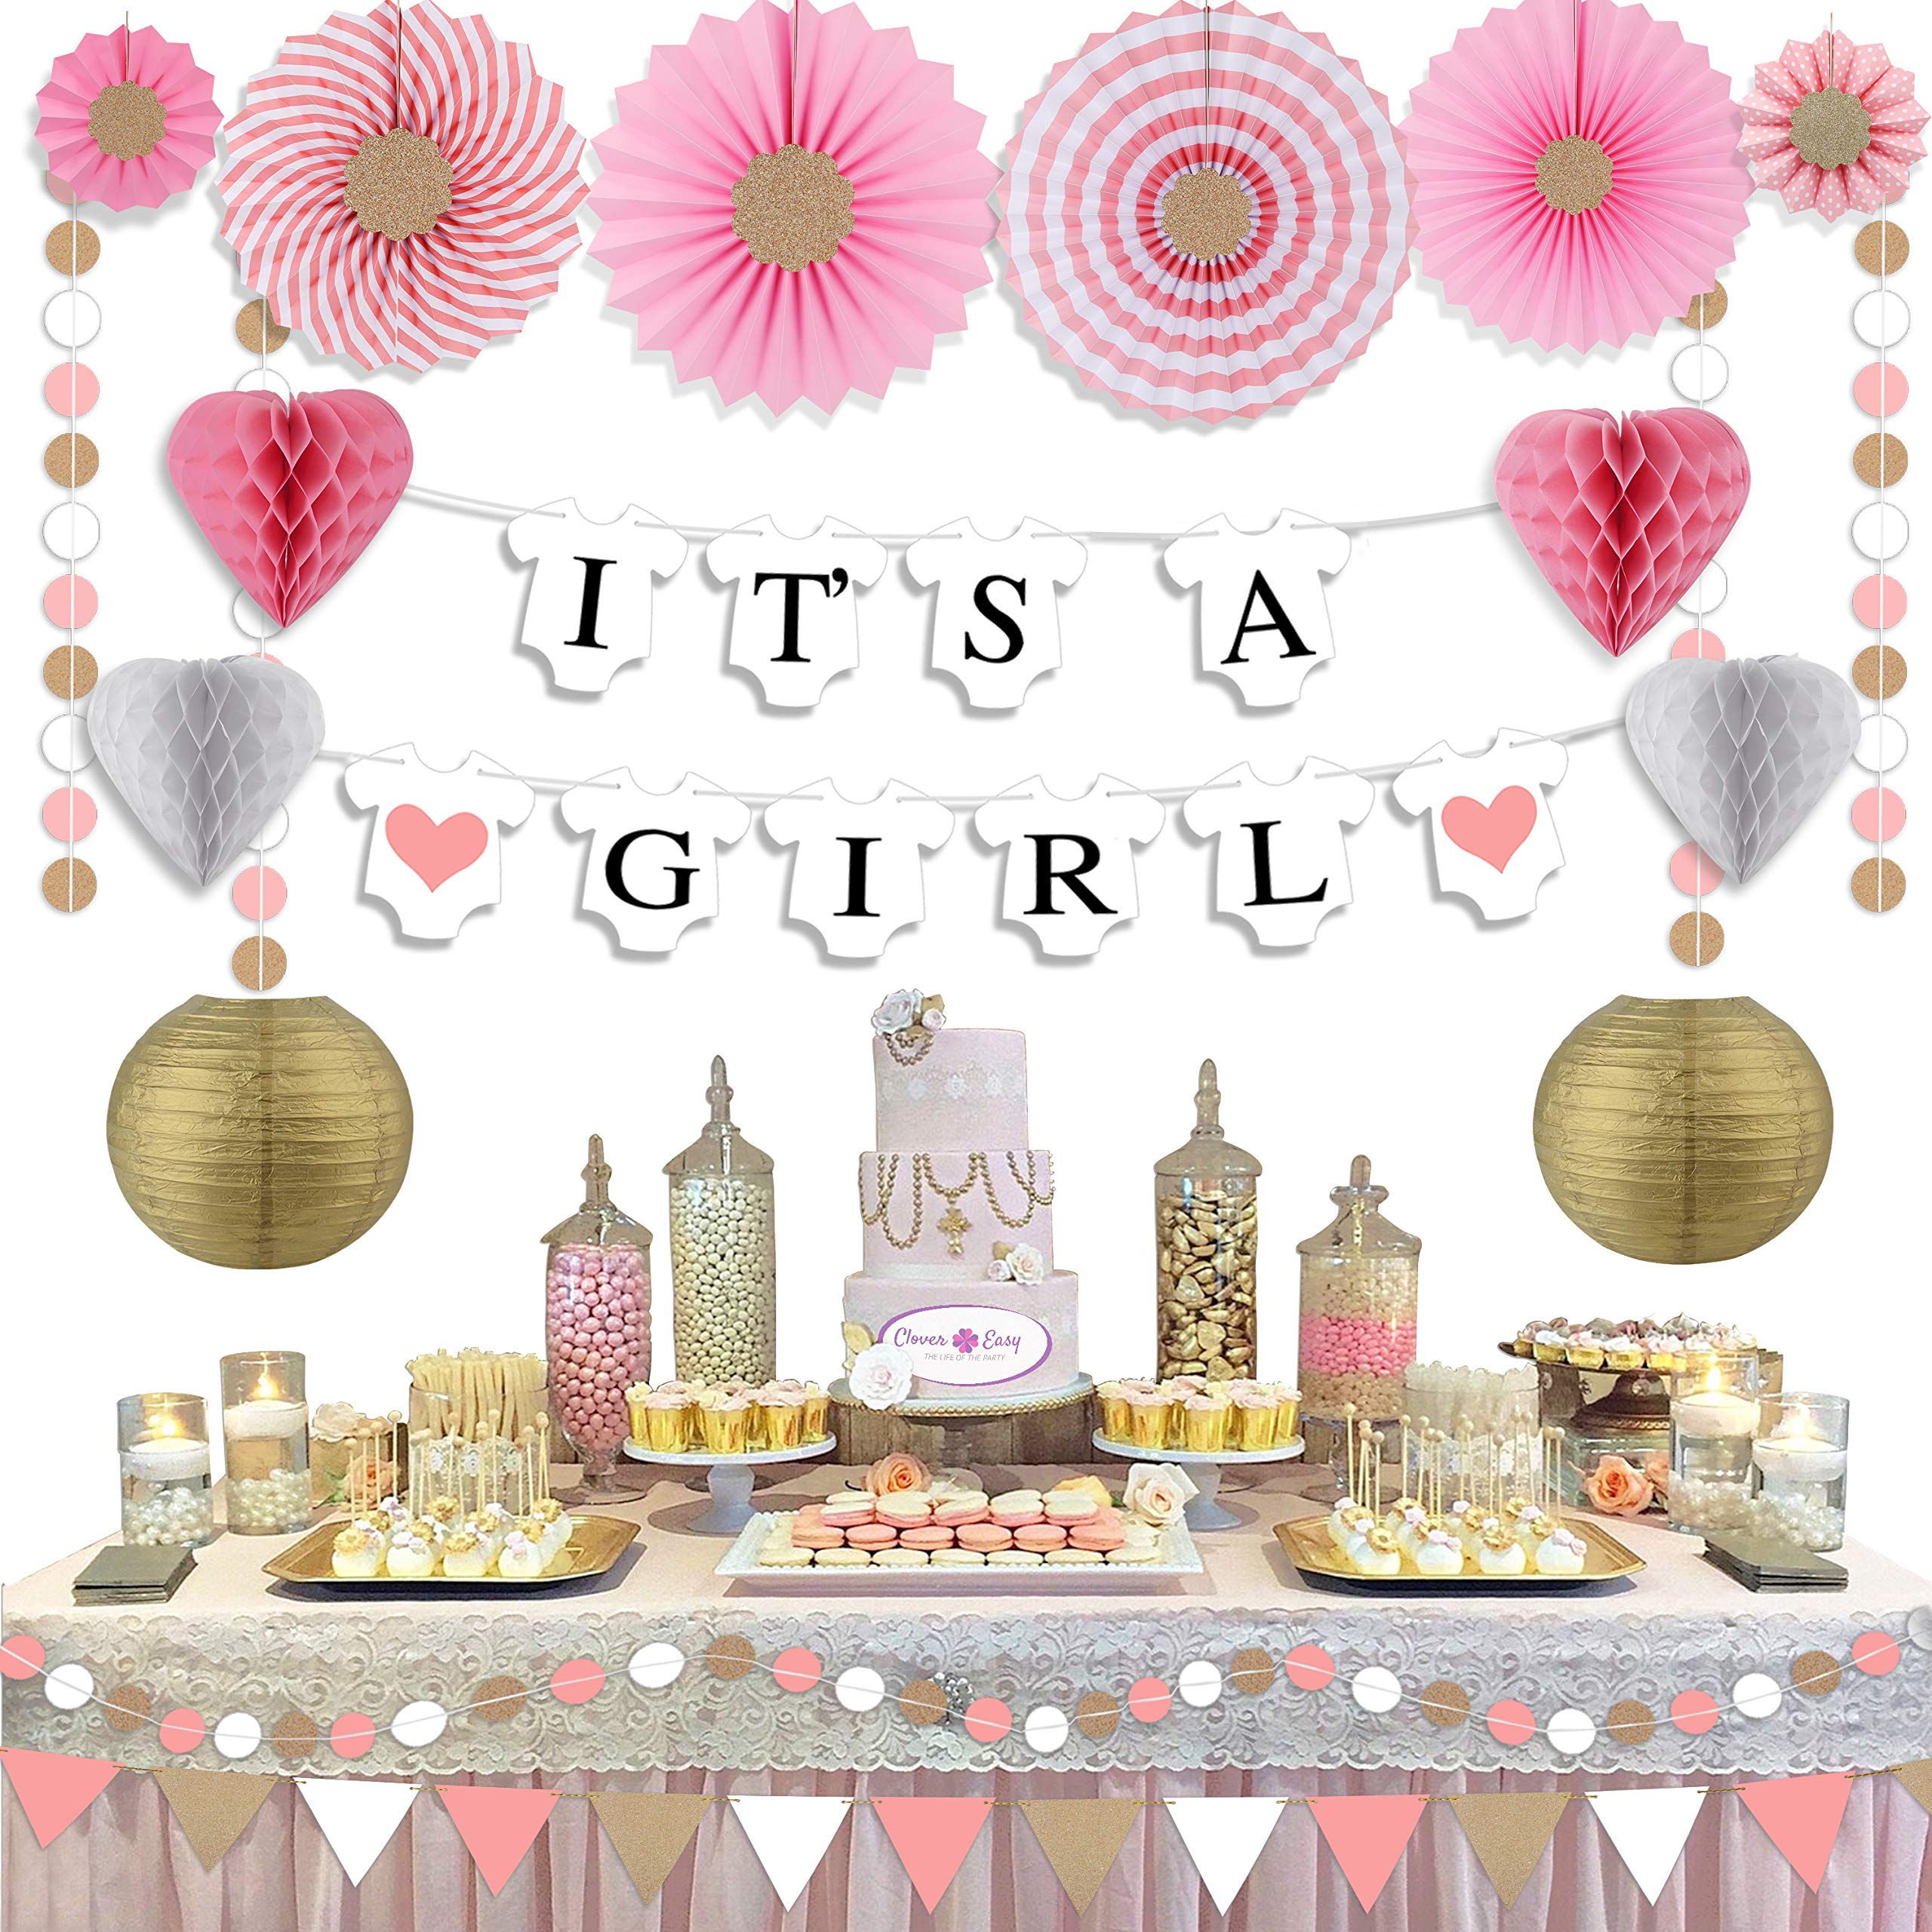 Clover Easy Girl Baby Shower Decorations - with Baby Shower Banner - Its a Girl Banner/Paper Lanterns Decorative/Gold Garland/Pink Garland/Paper Fan Decorations/Bunting Banner/Princess Party Supplies by Clover Easy